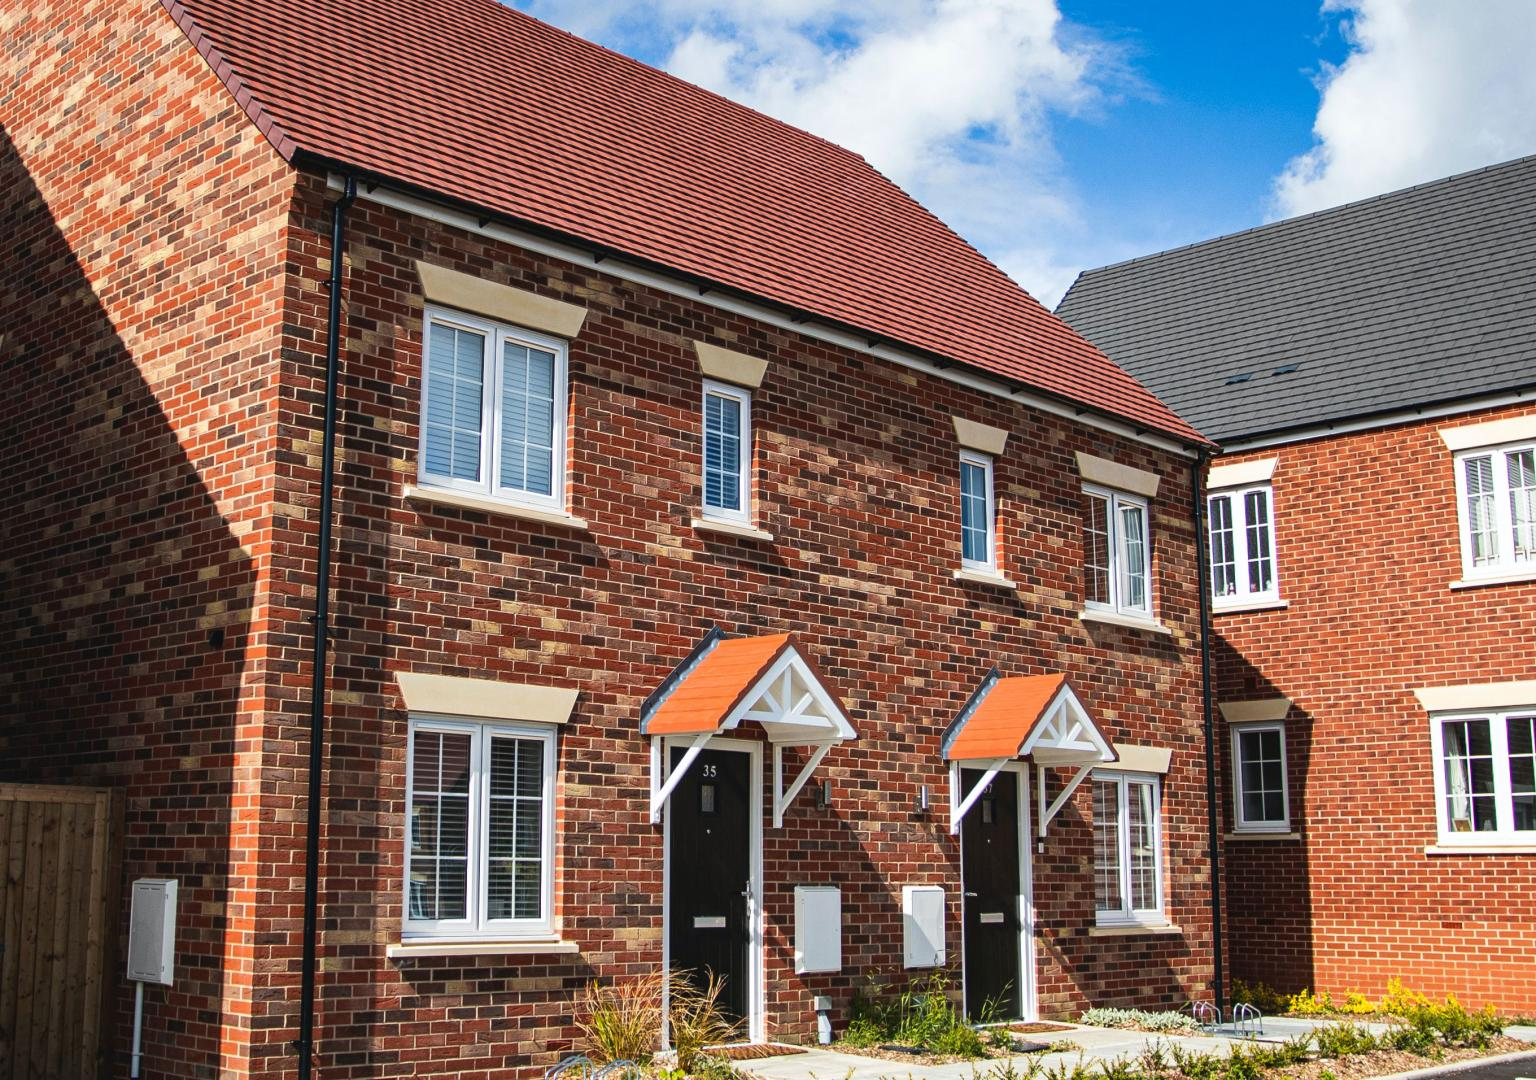 Lettings: Why choose us to manage your property